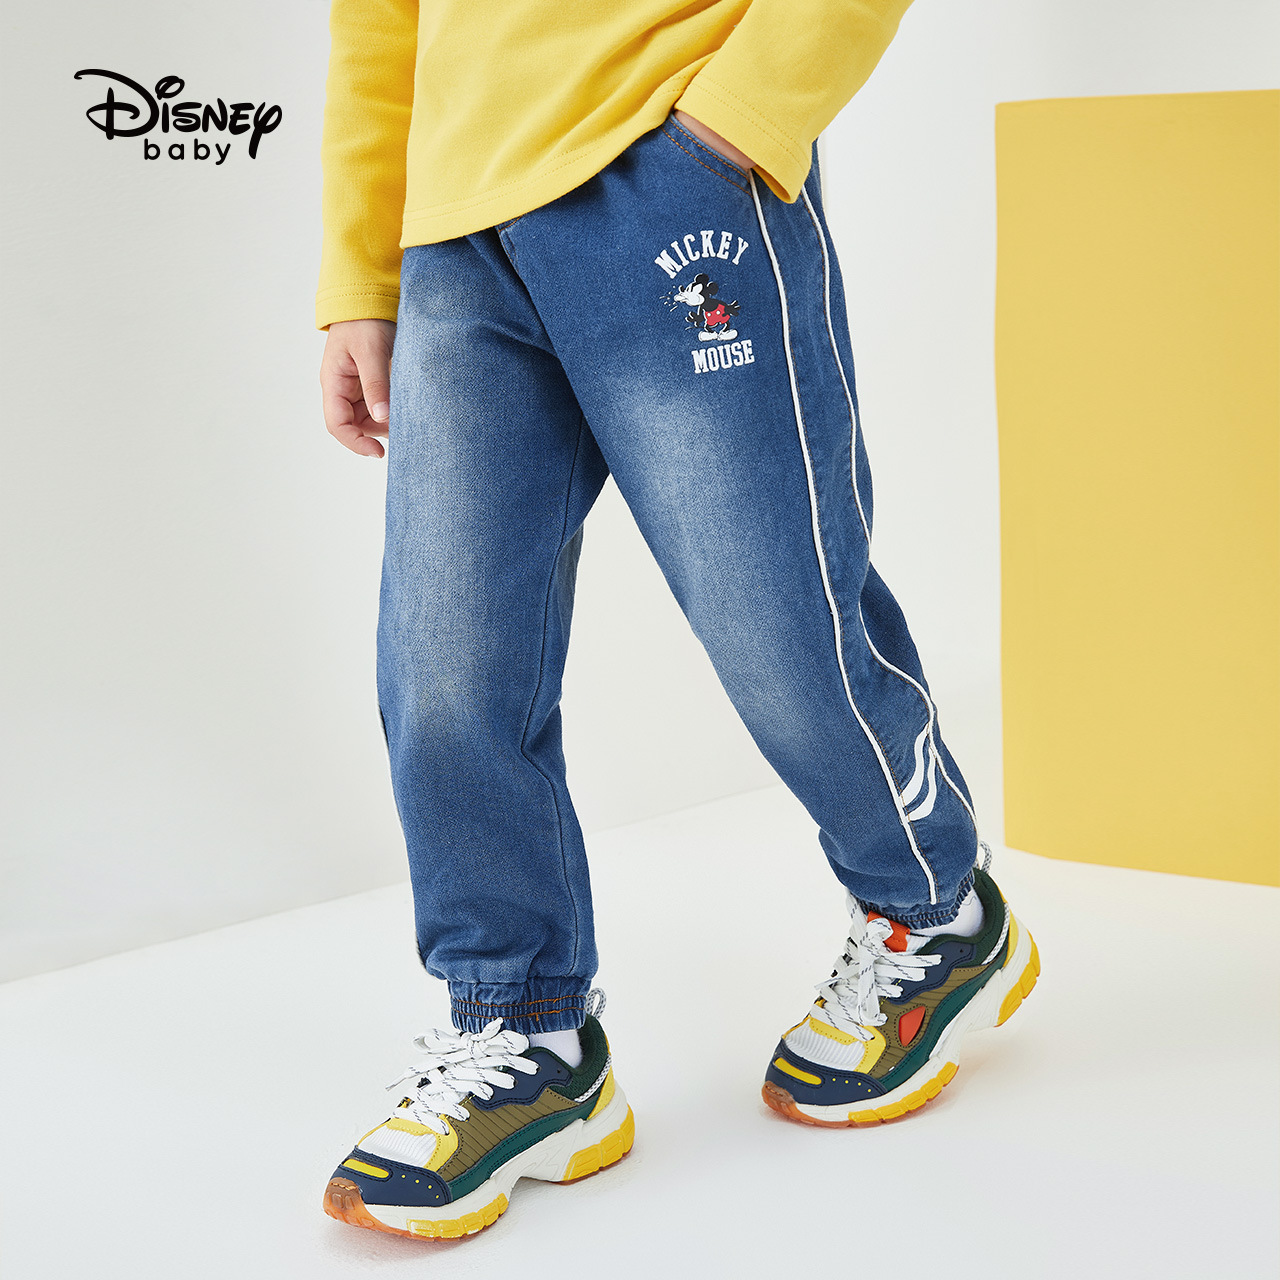 Disney Boy Jeans Spring And Autumn New Children's Casual Pants Fashion Cartoon Mickey Pants DB031ME19